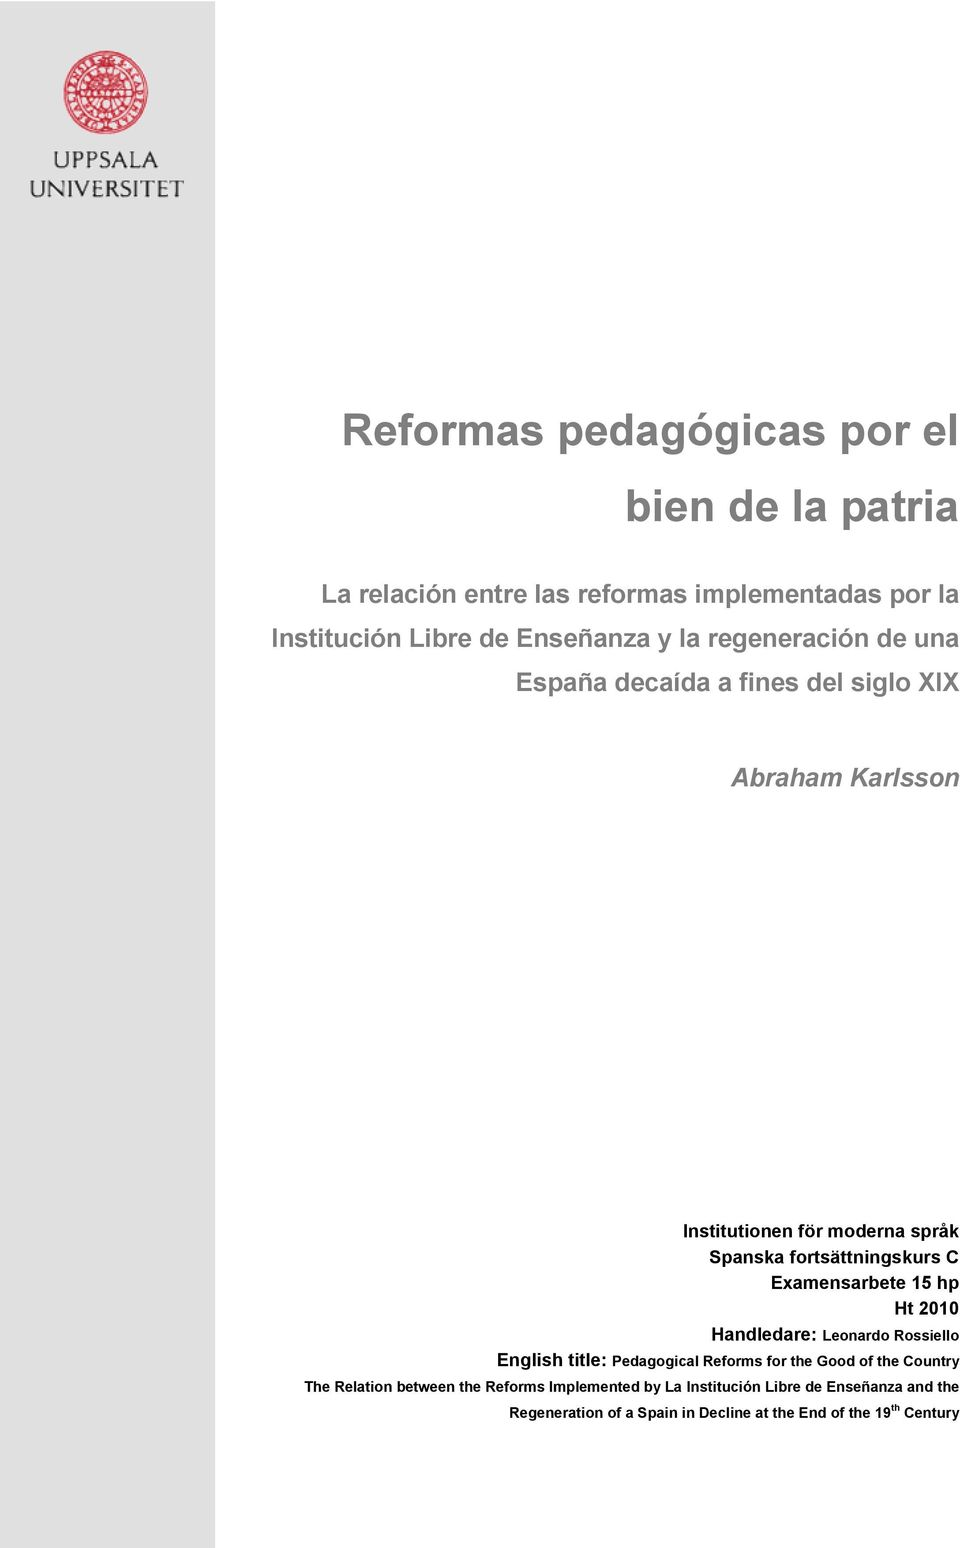 Examensarbete 15 hp Ht 2010 Handledare: Leonardo Rossiello English title: Pedagogical Reforms for the Good of the Country The Relation